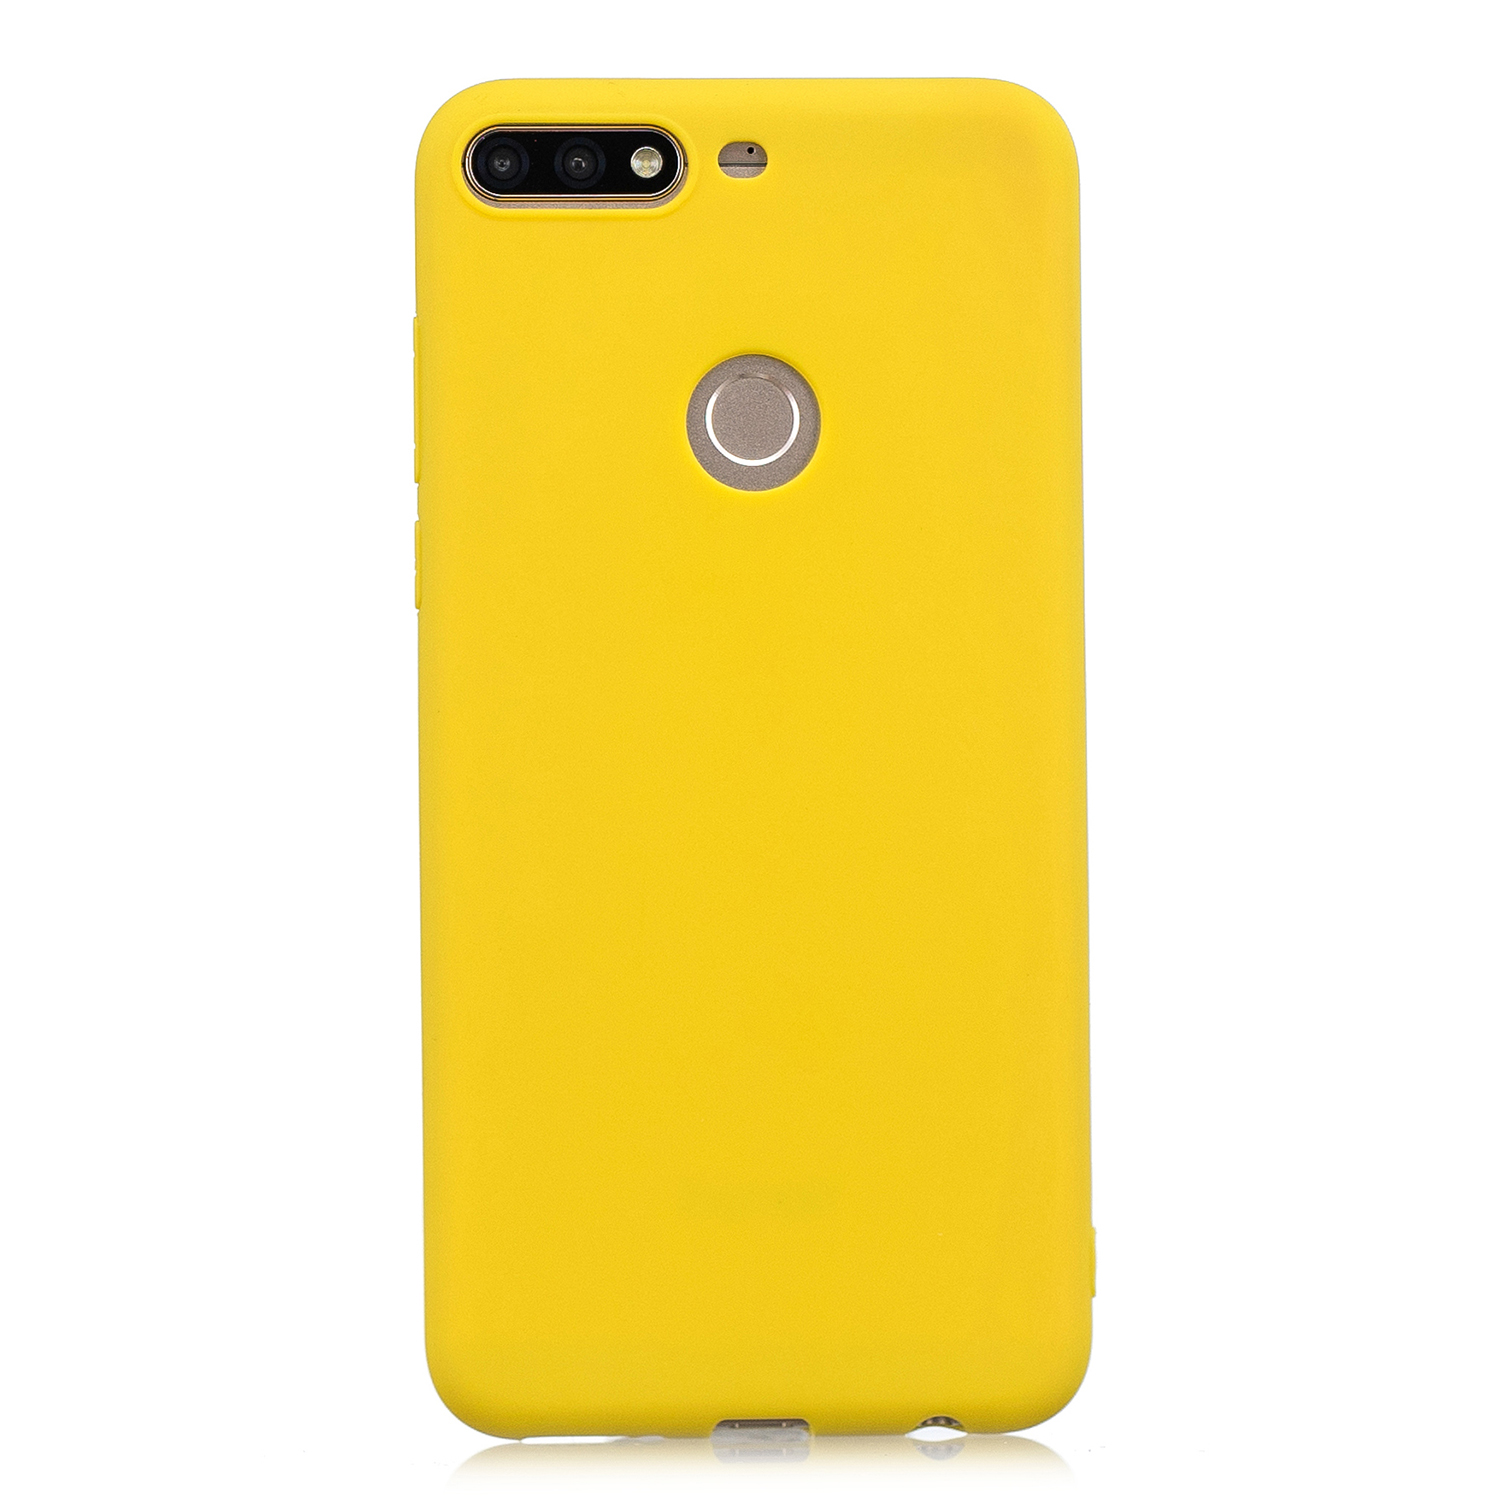 for HUAWEI Y9 2018 Lovely Candy Color Matte TPU Anti-scratch Non-slip Protective Cover Back Case yellow